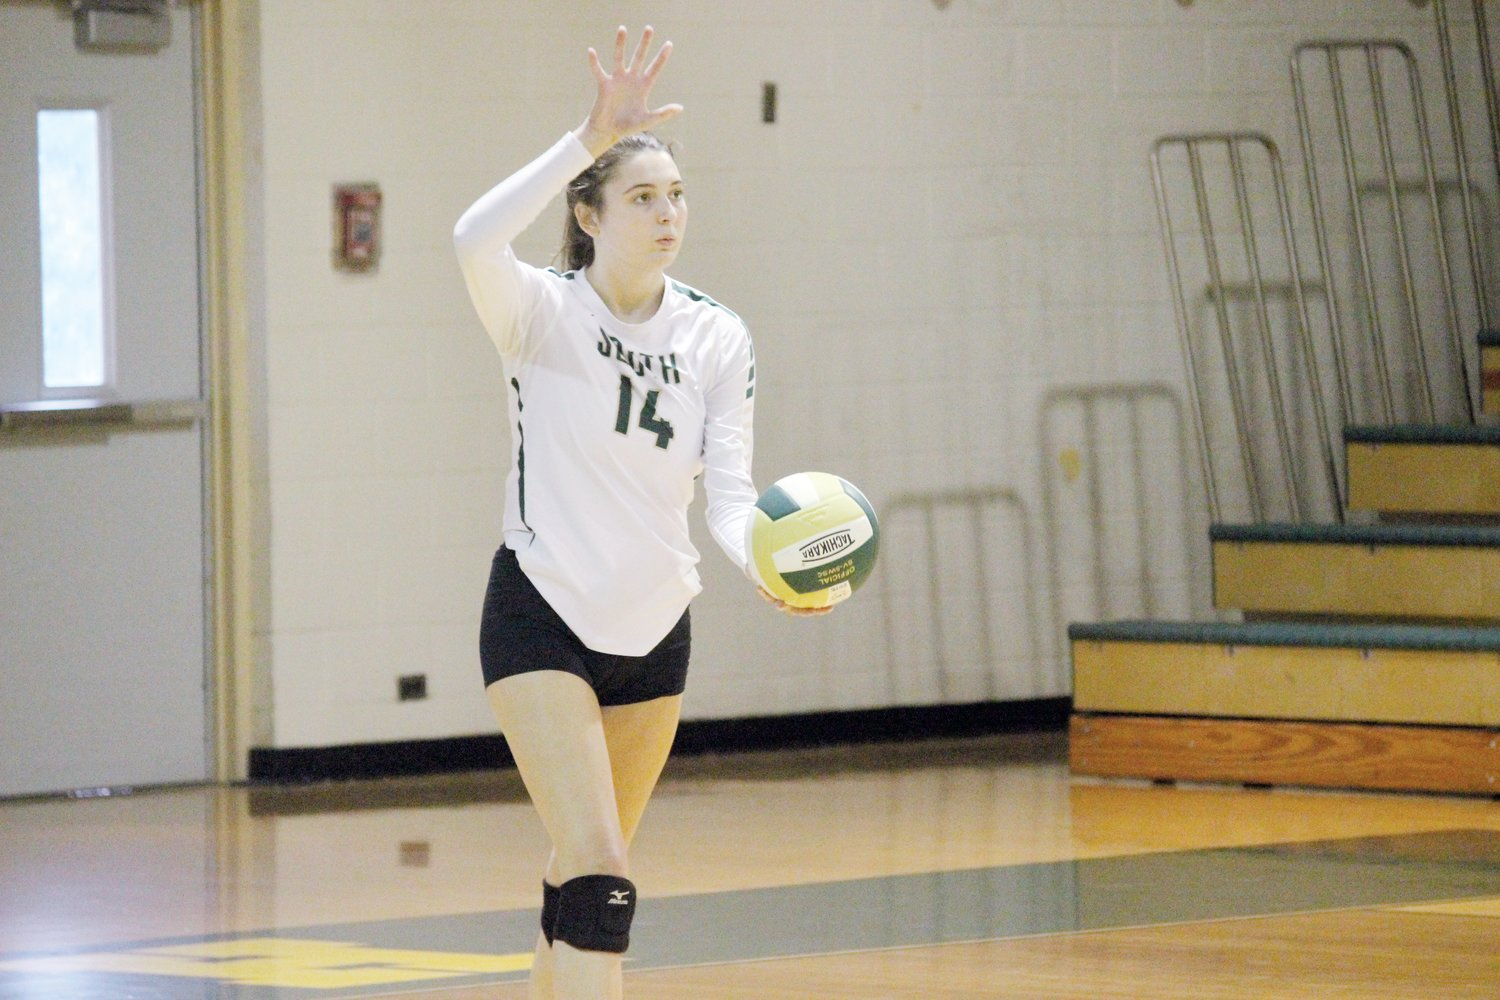 South Johnston's Jenna Brown sets to serve in the Trojans' 3-1 victory over Midway on Tuesday.